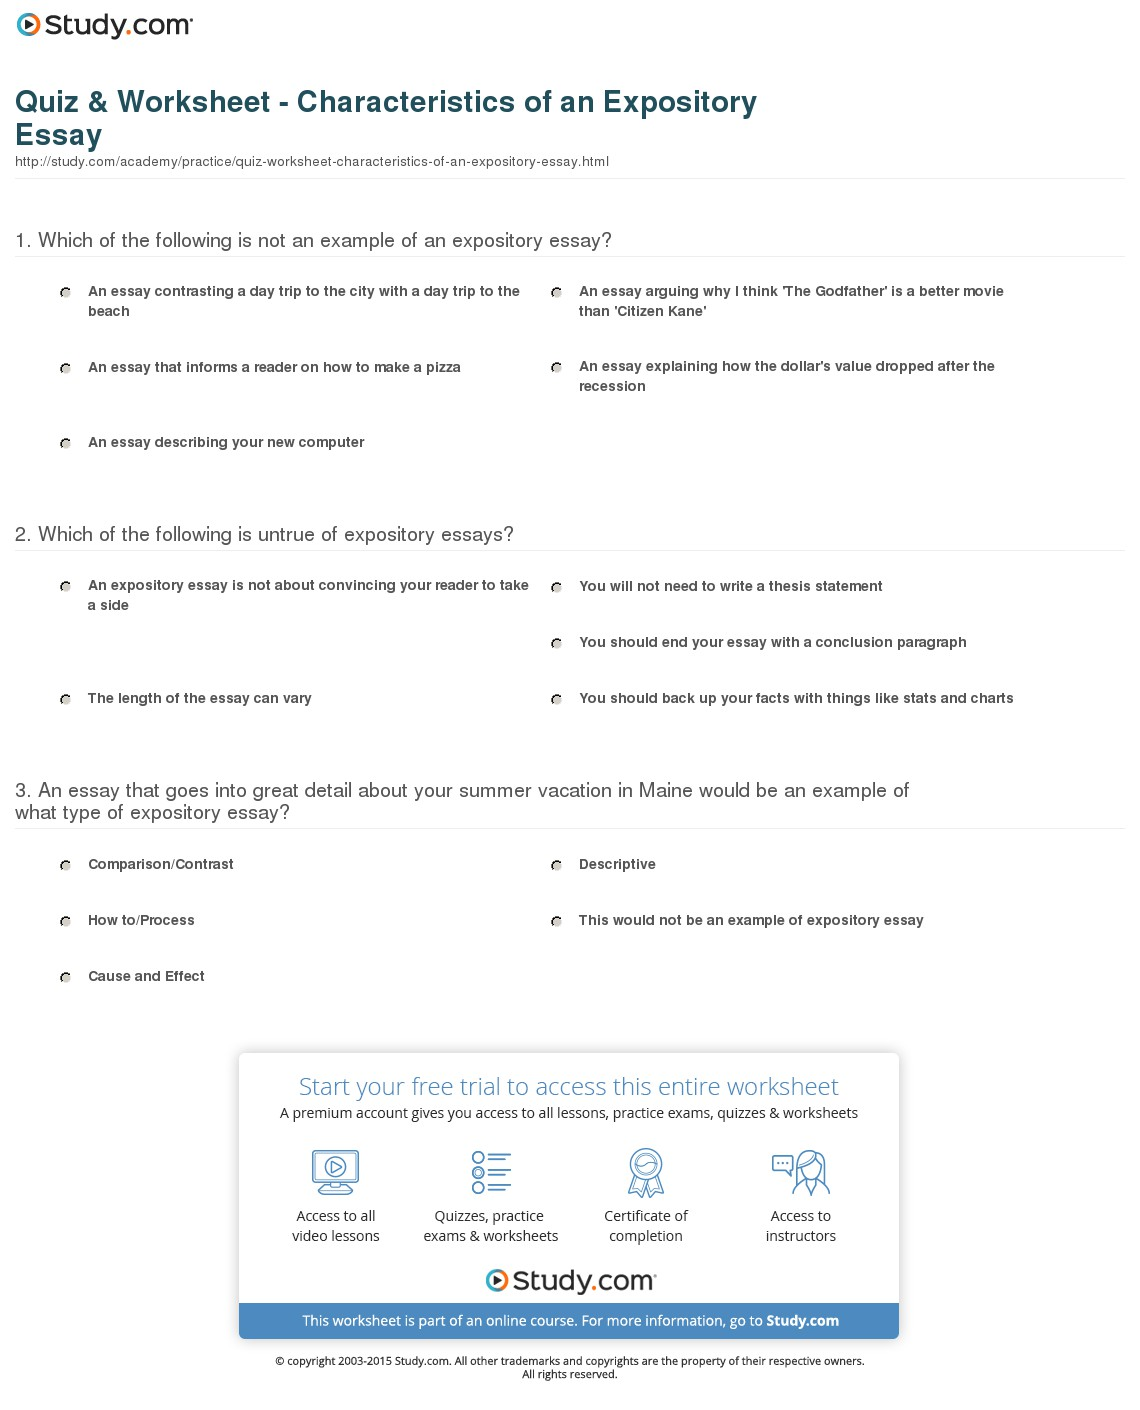 008 Quiz Worksheet Characteristics Of An Expository Essay Example Phenomenal Whats What Is Powerpoint What's Does Consist Full